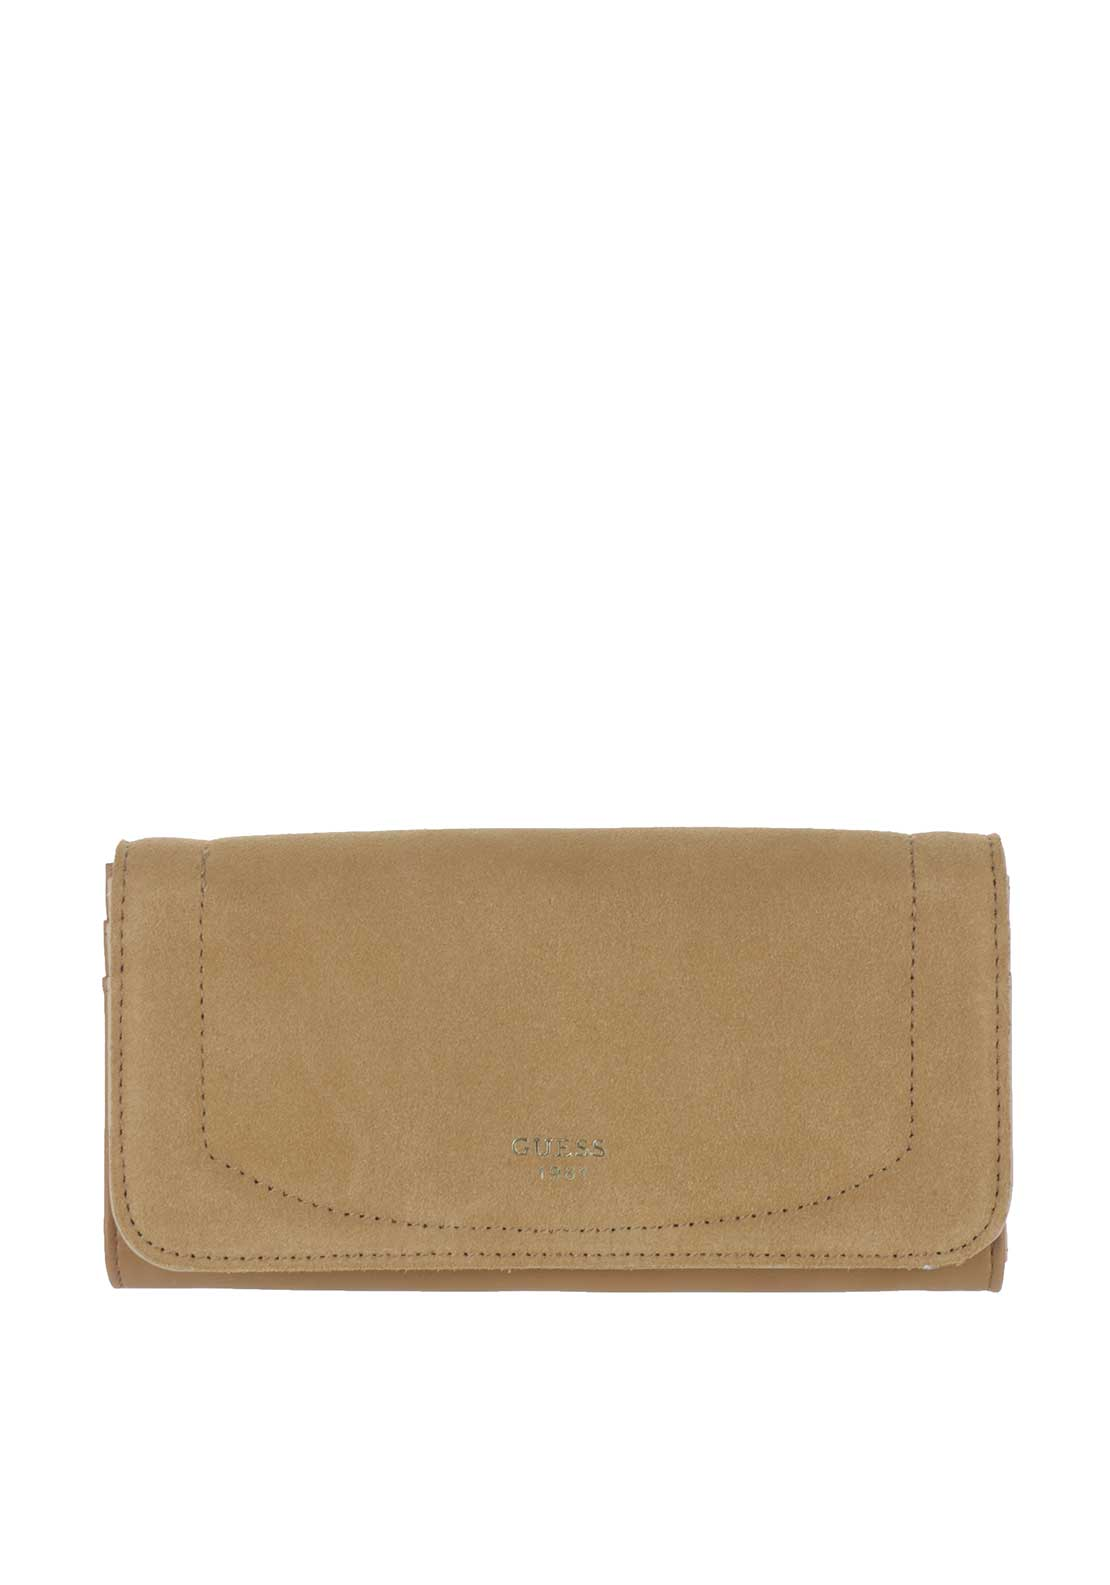 Guess Kingsley SLG Suede Insert Rollover Case Purse, Cognac